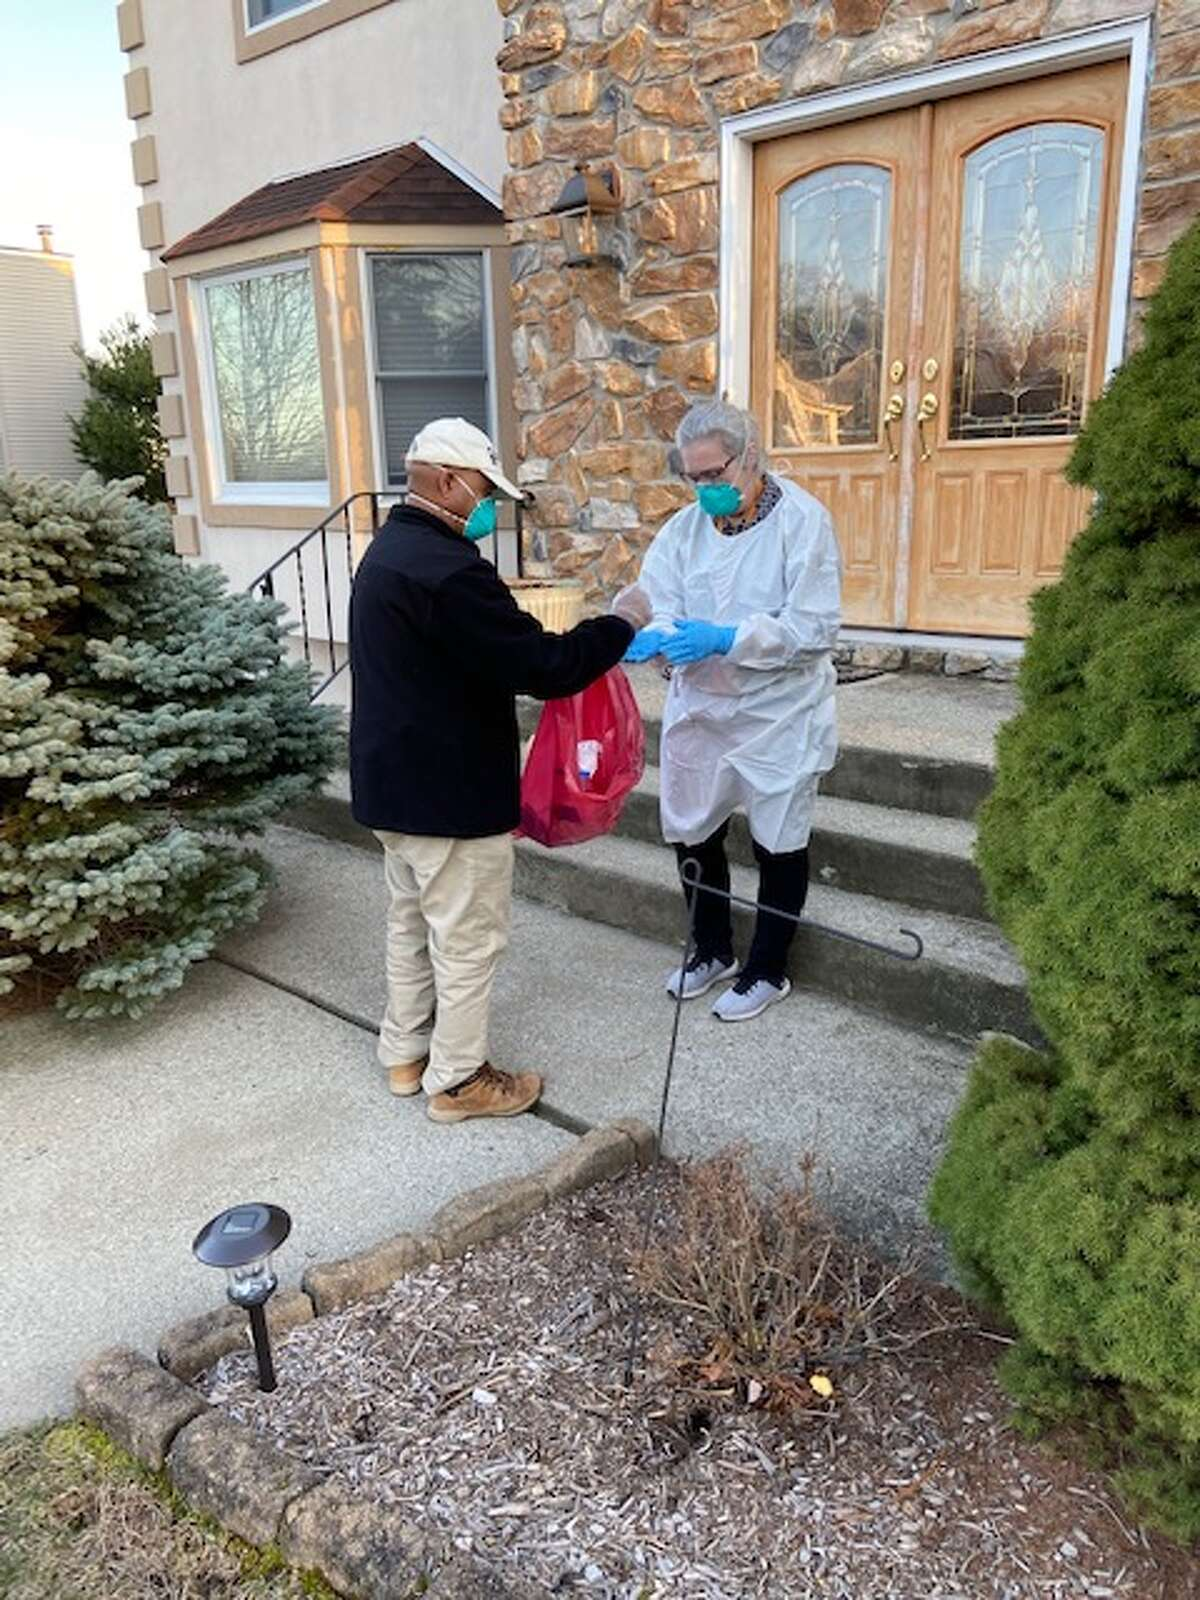 A state public health nurse wearing protective clothing and a state parole officer who was serving as her driver collect samples from residents in Westchester County last weekend. (Provided Photo)